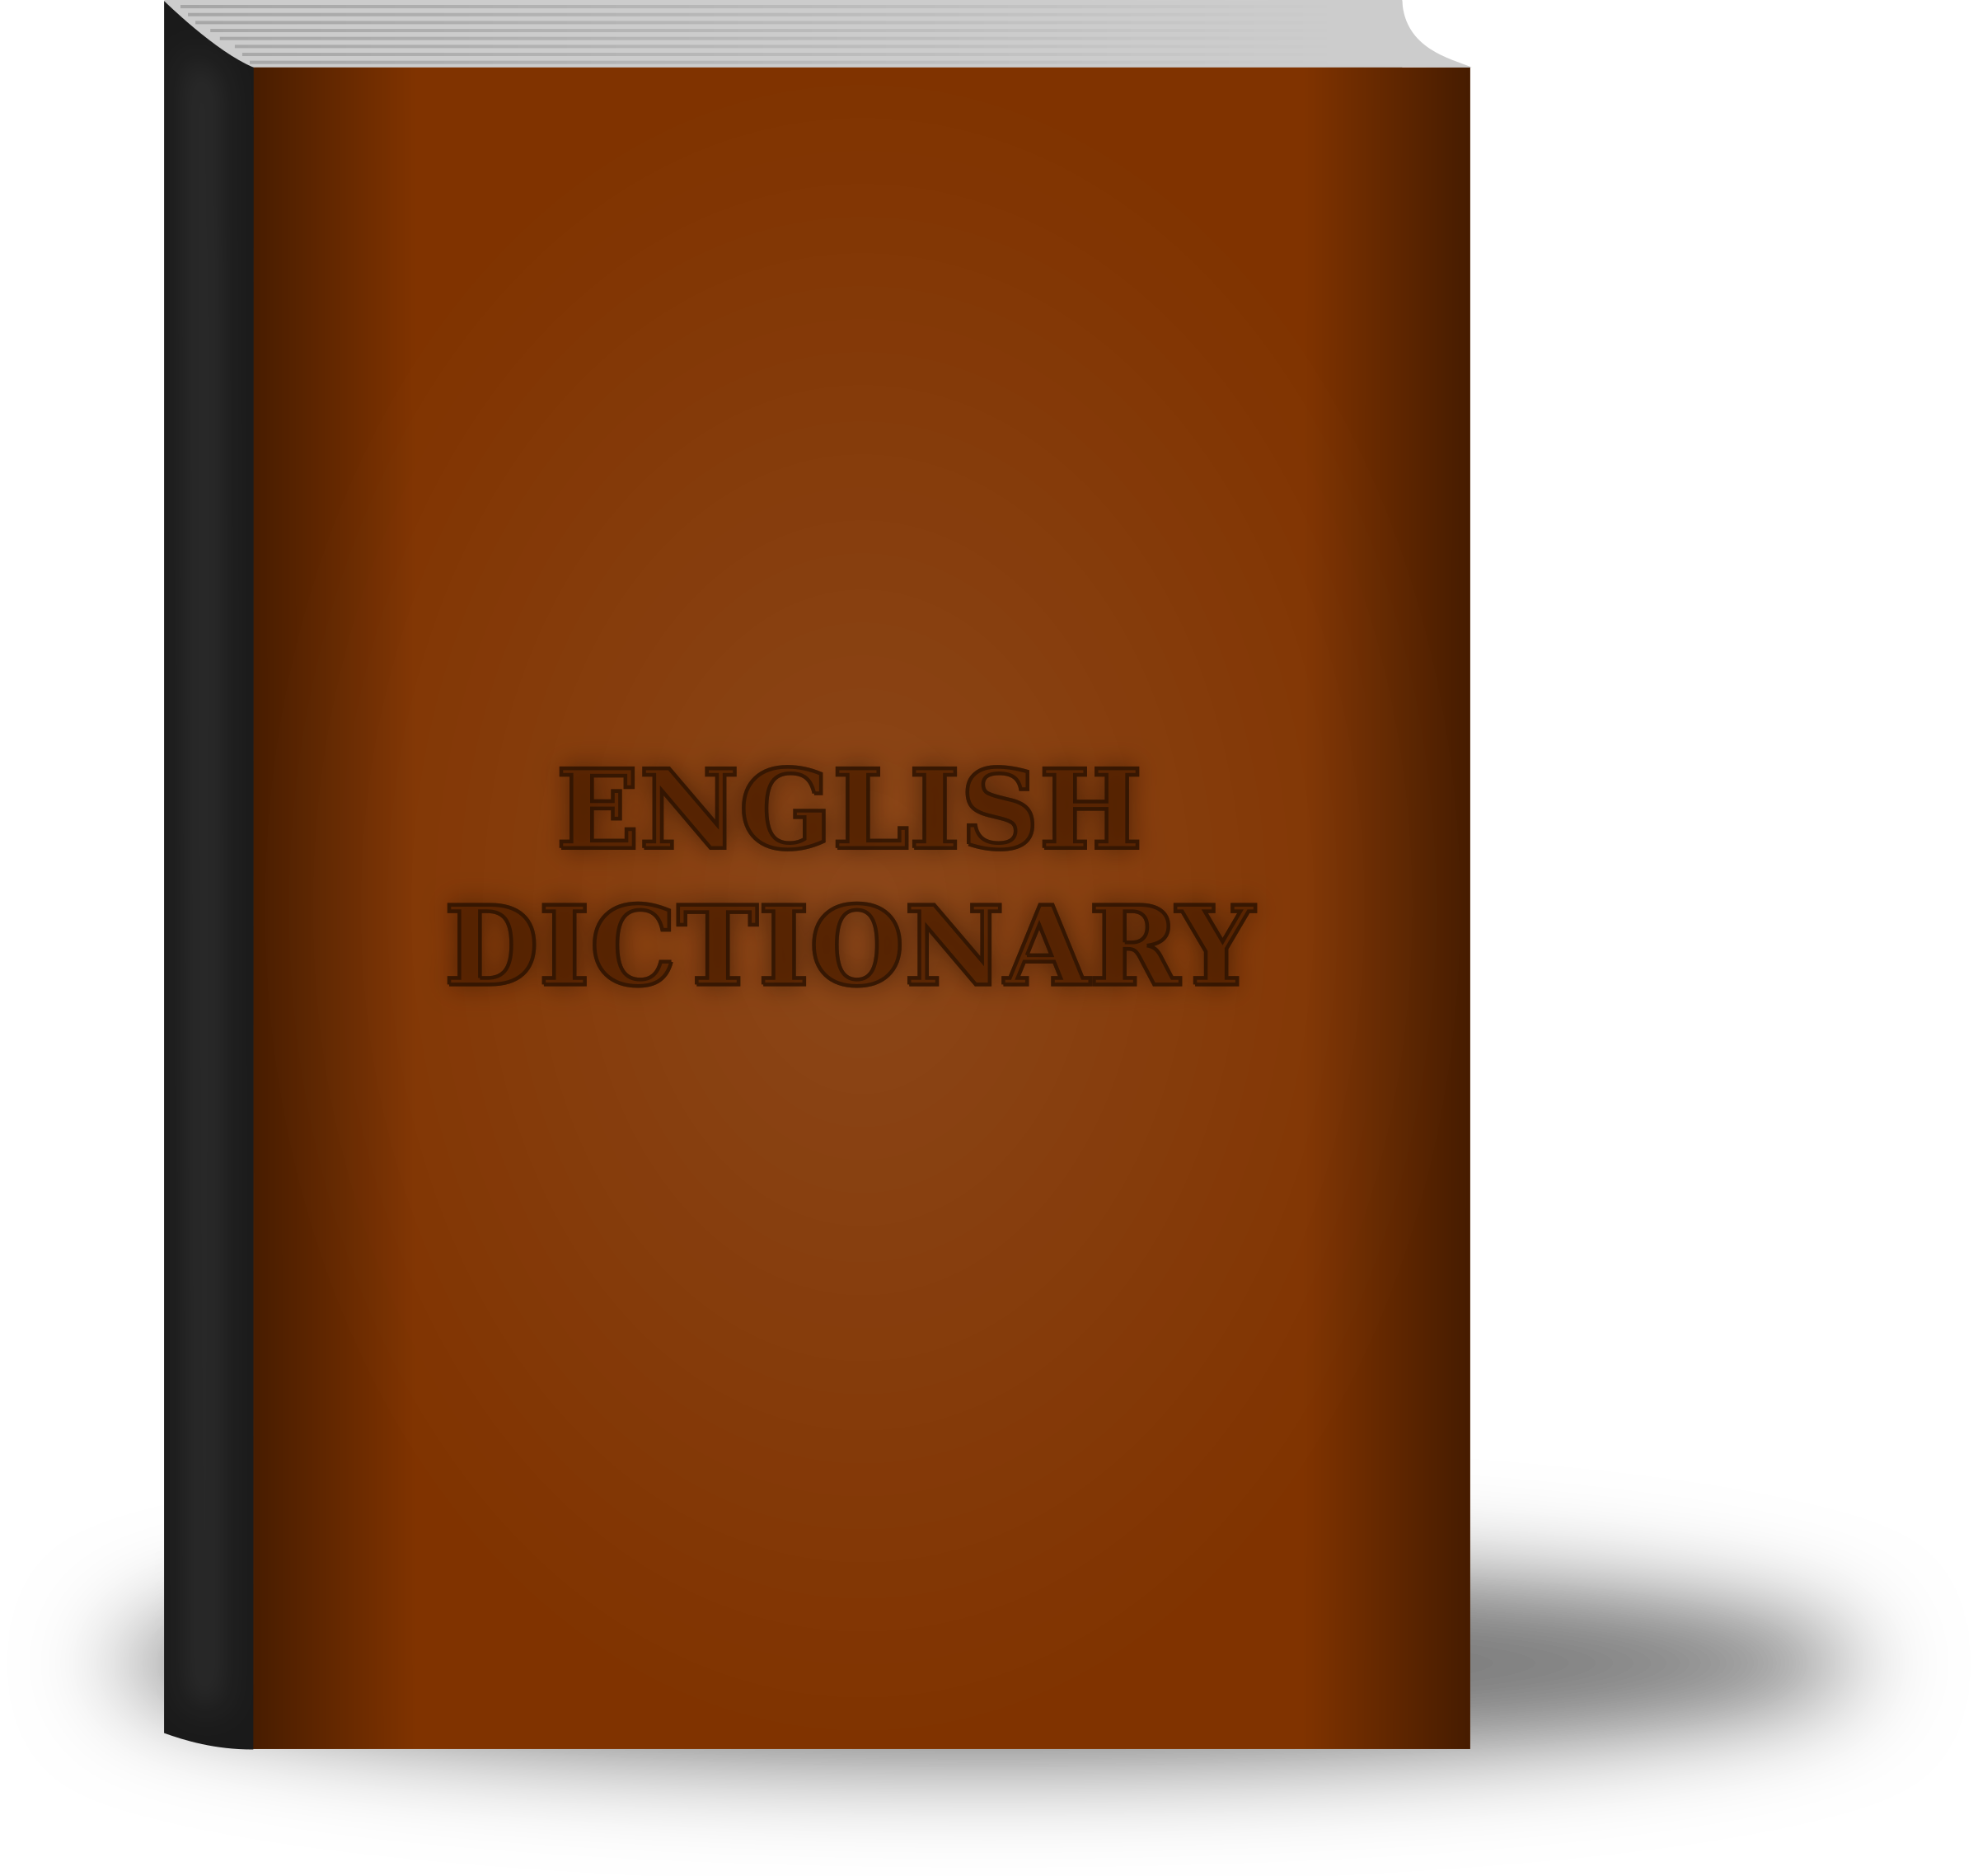 Old image png. Dictionary clipart big book